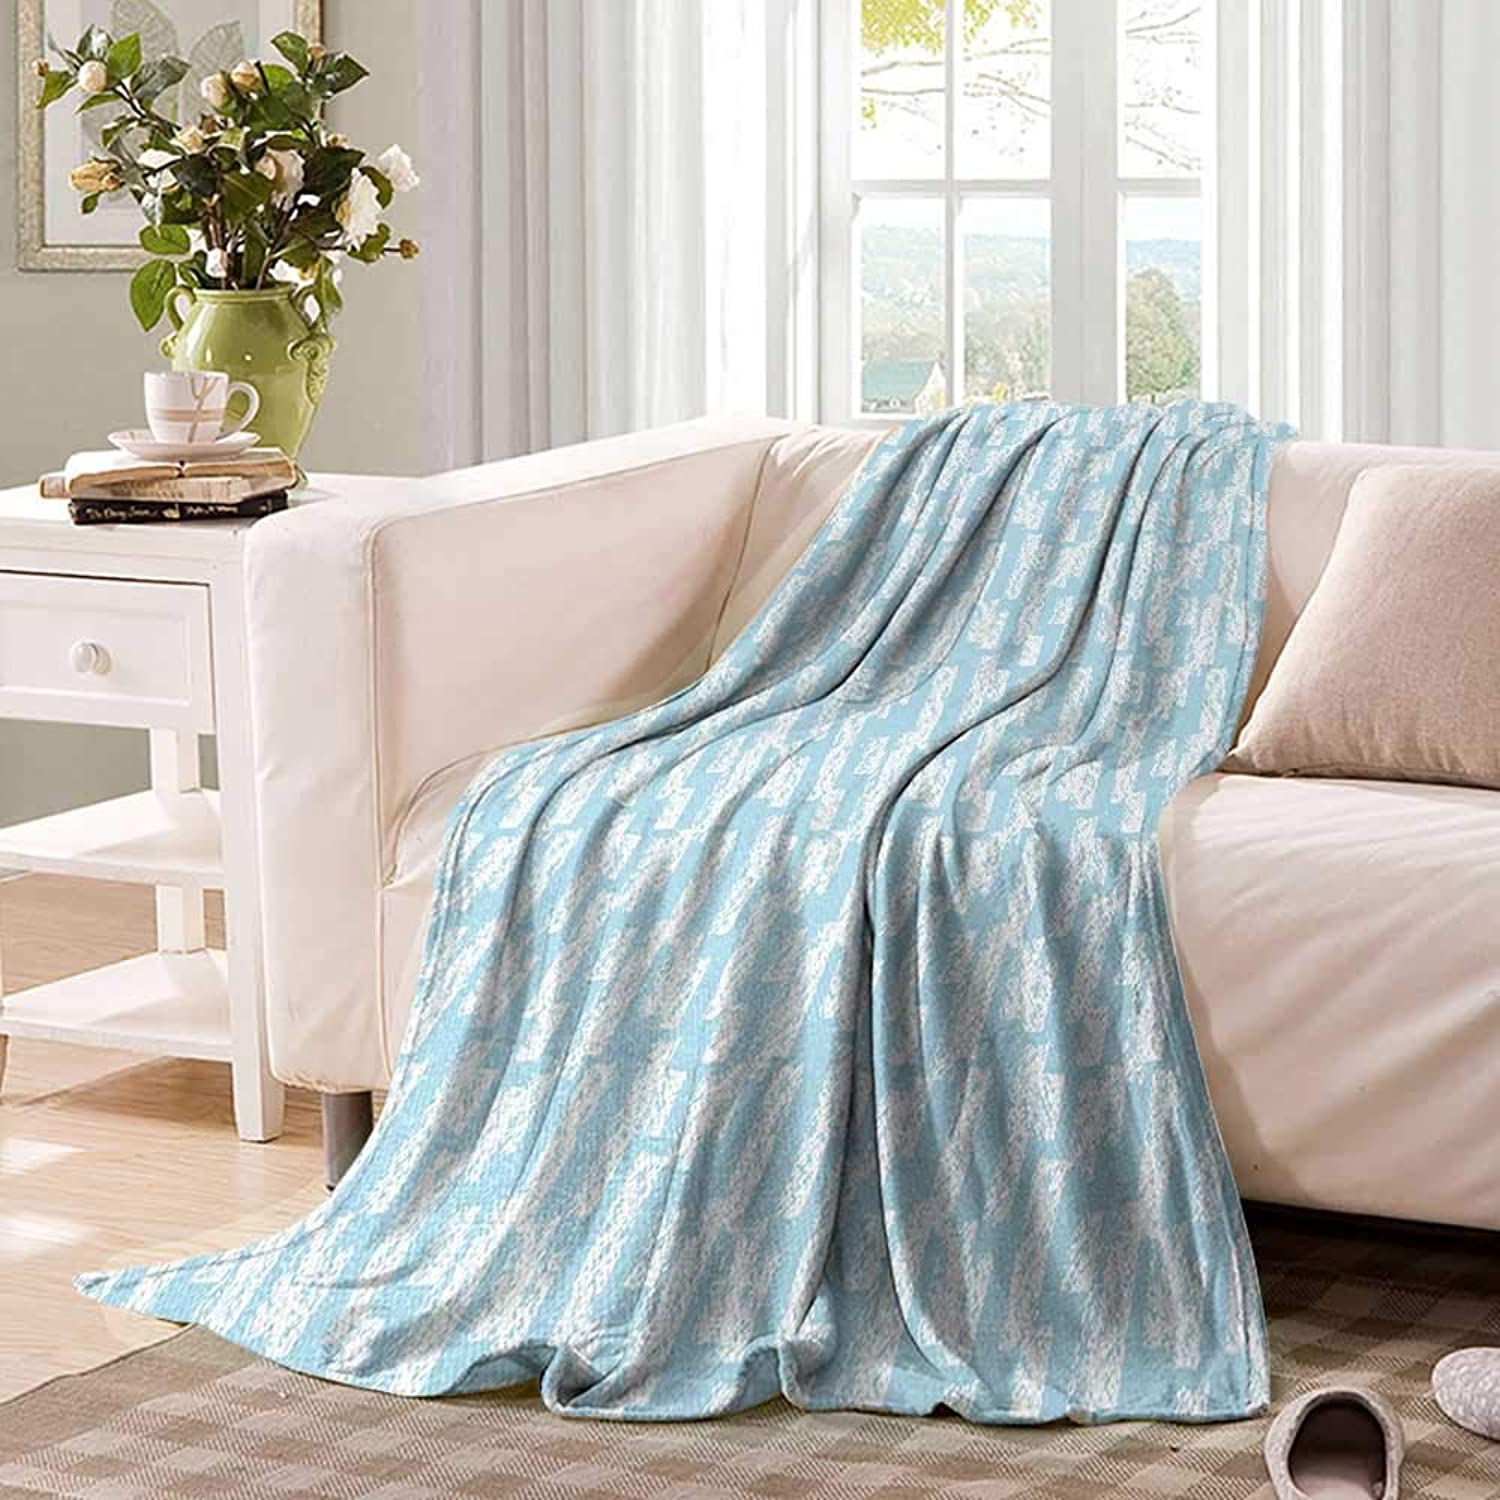 Light blueefluffy blanketWall with Brushstrokes Seem Made by a Painter Modern Minimalist Designbed Blanket 60 x50  Baby bluee and White